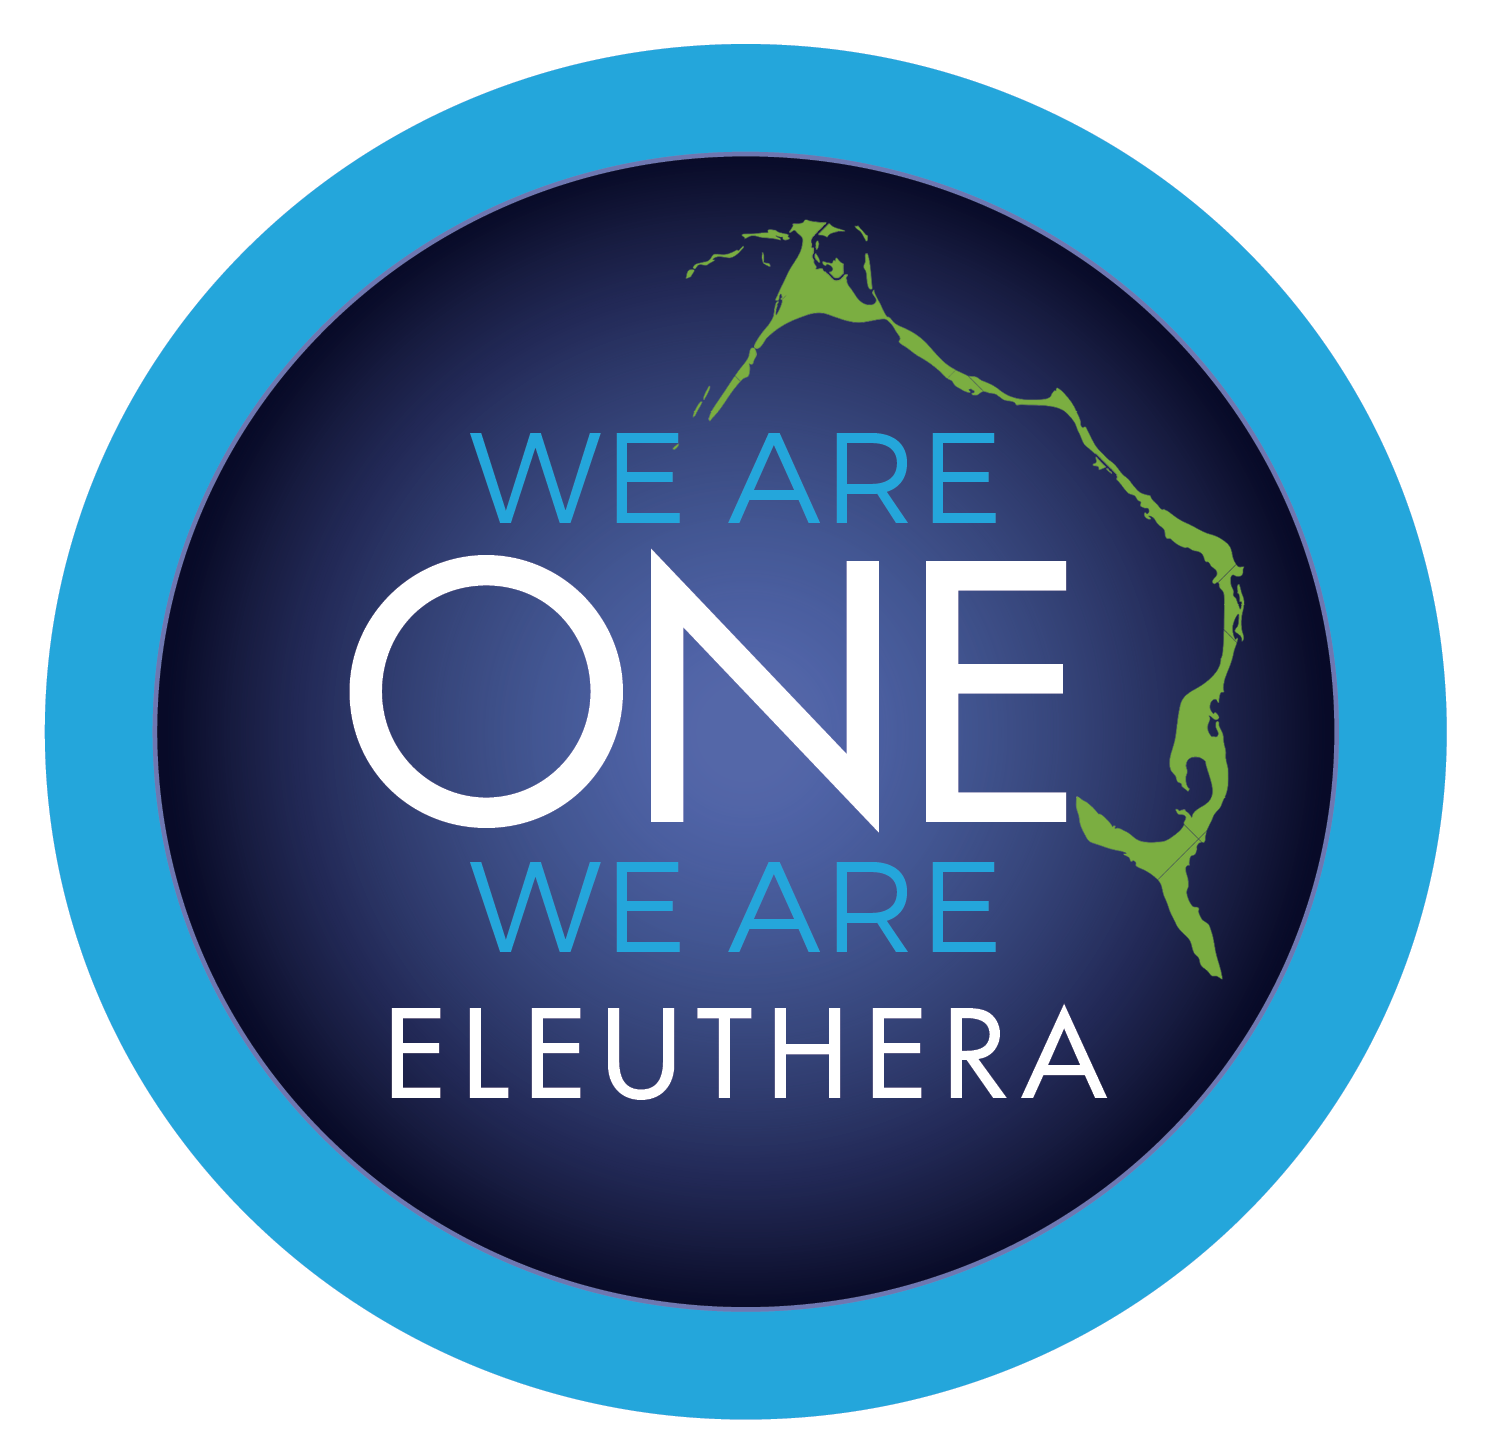 WE ARE ONE WE ARE ELEUTHERA